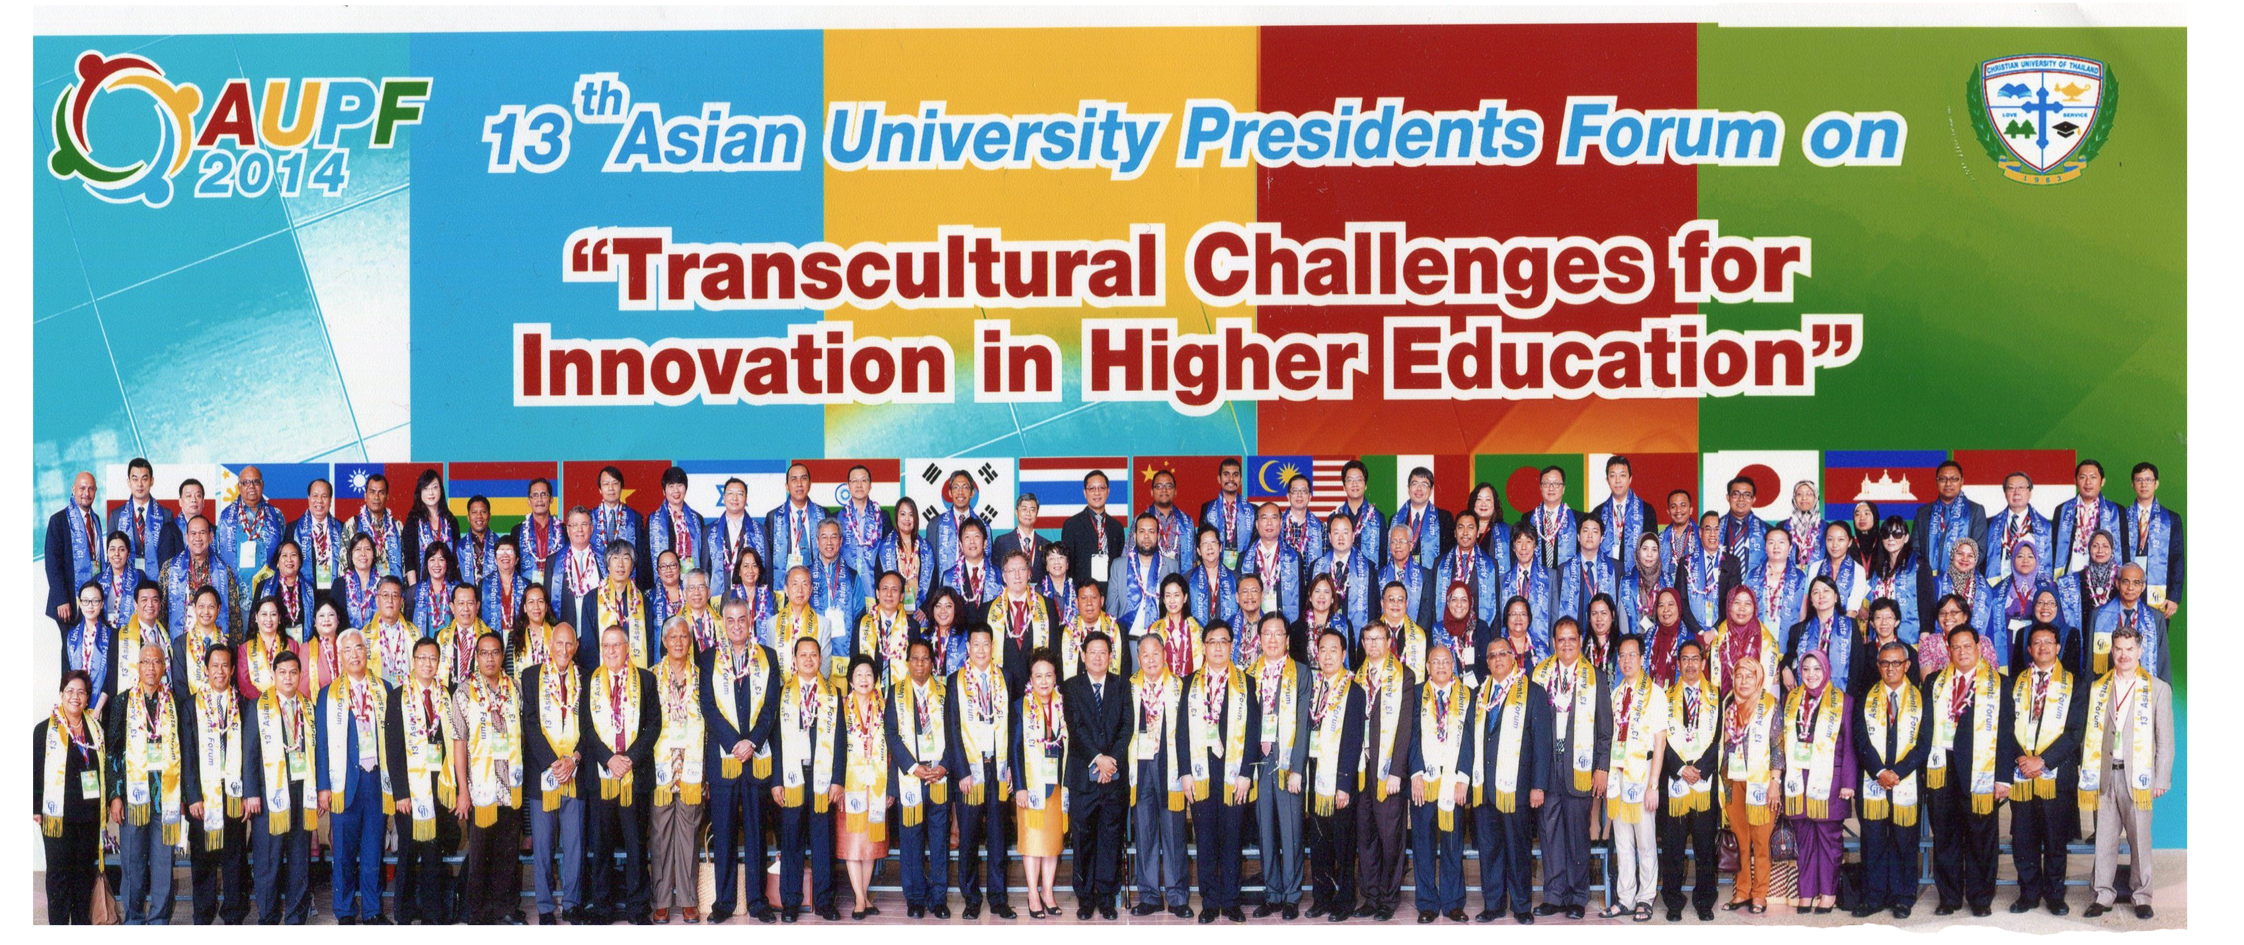 unpab-go-to-the-aupf-2014-in-christian-university-thailand_300698.jpg